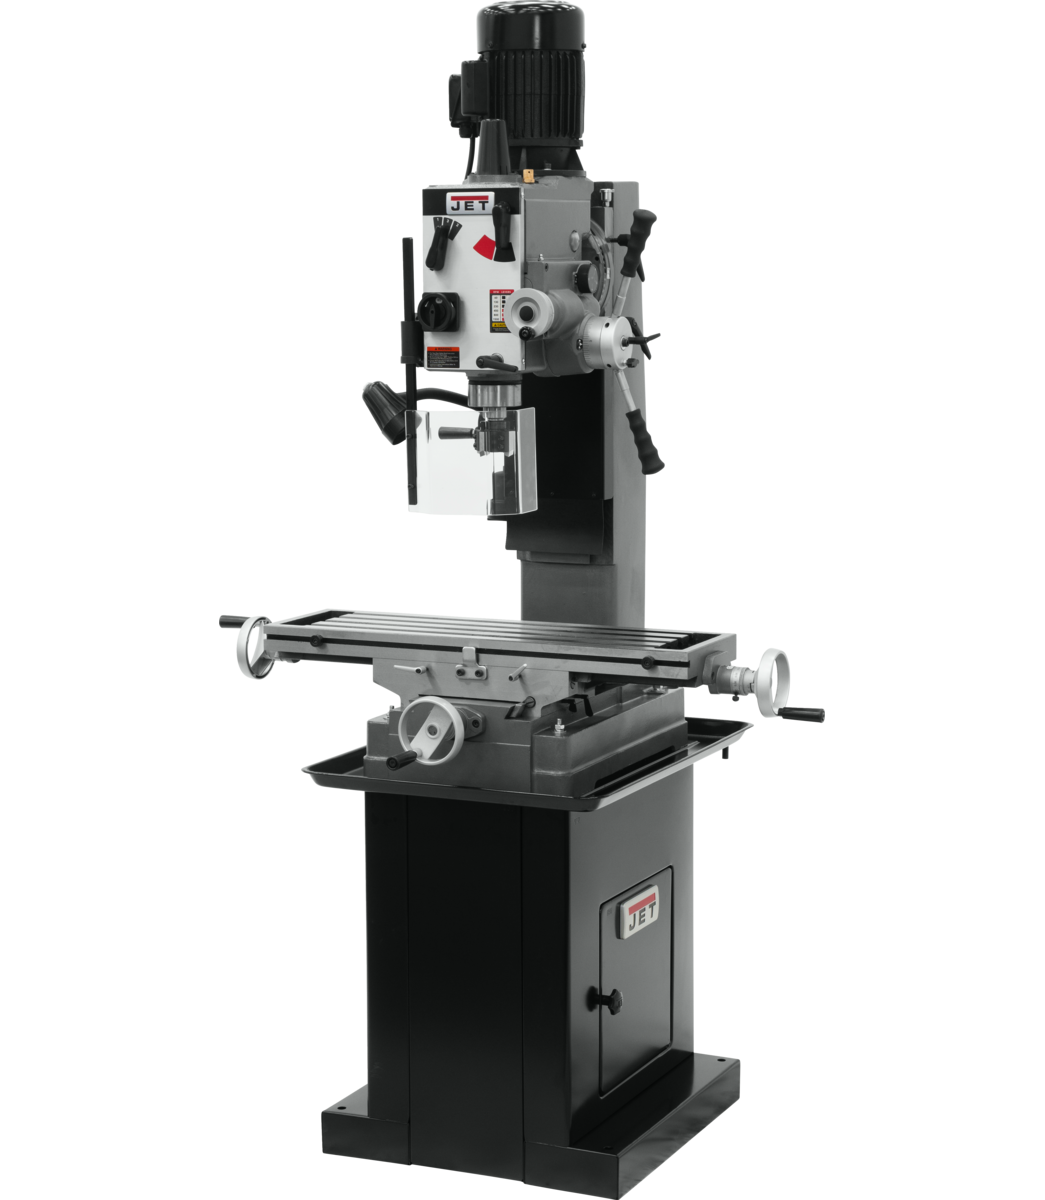 JMD-45GHPF Geared Head Square Column Mill/Drill with Power Downfeed with DP700 2-Axis DRO & X-Axis P